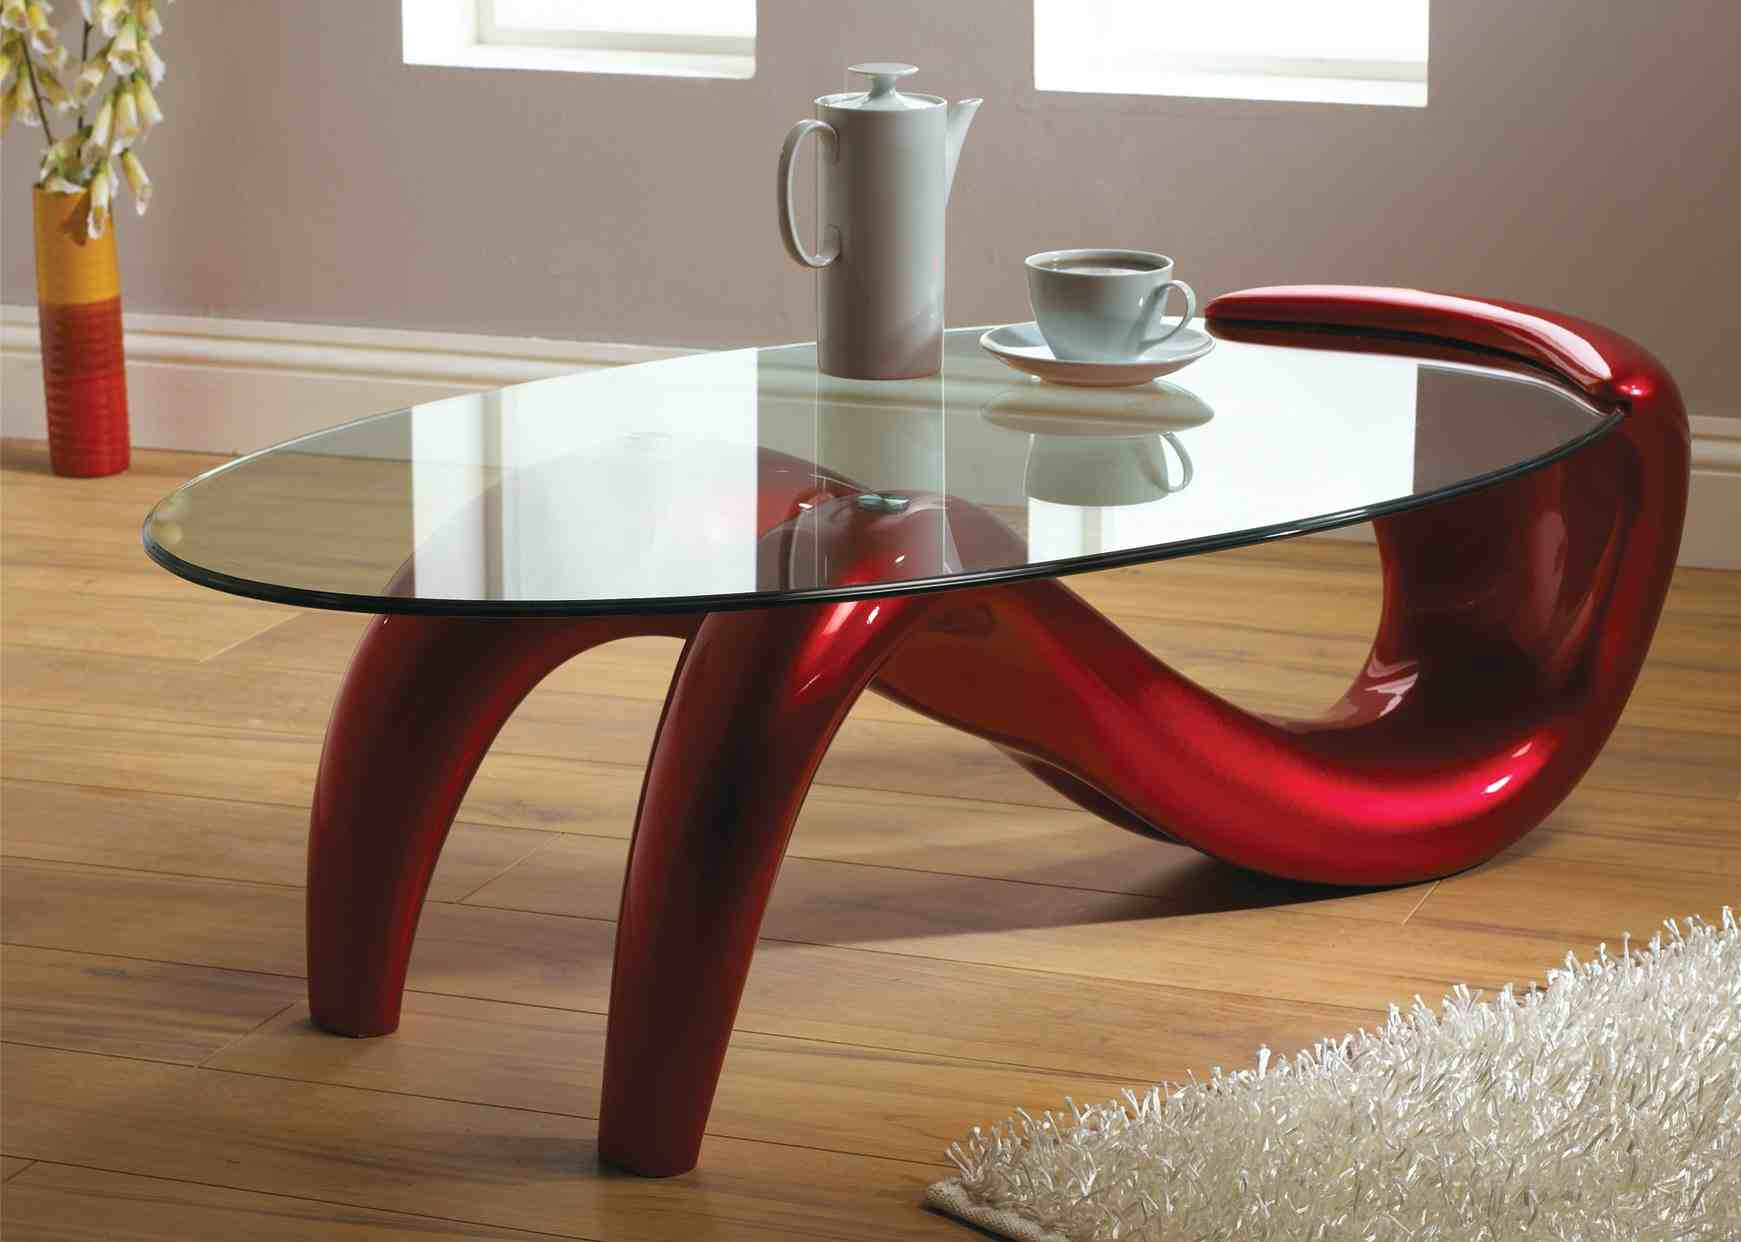 Modern glass coffee table design images photos pictures for Contemporary glass top coffee table